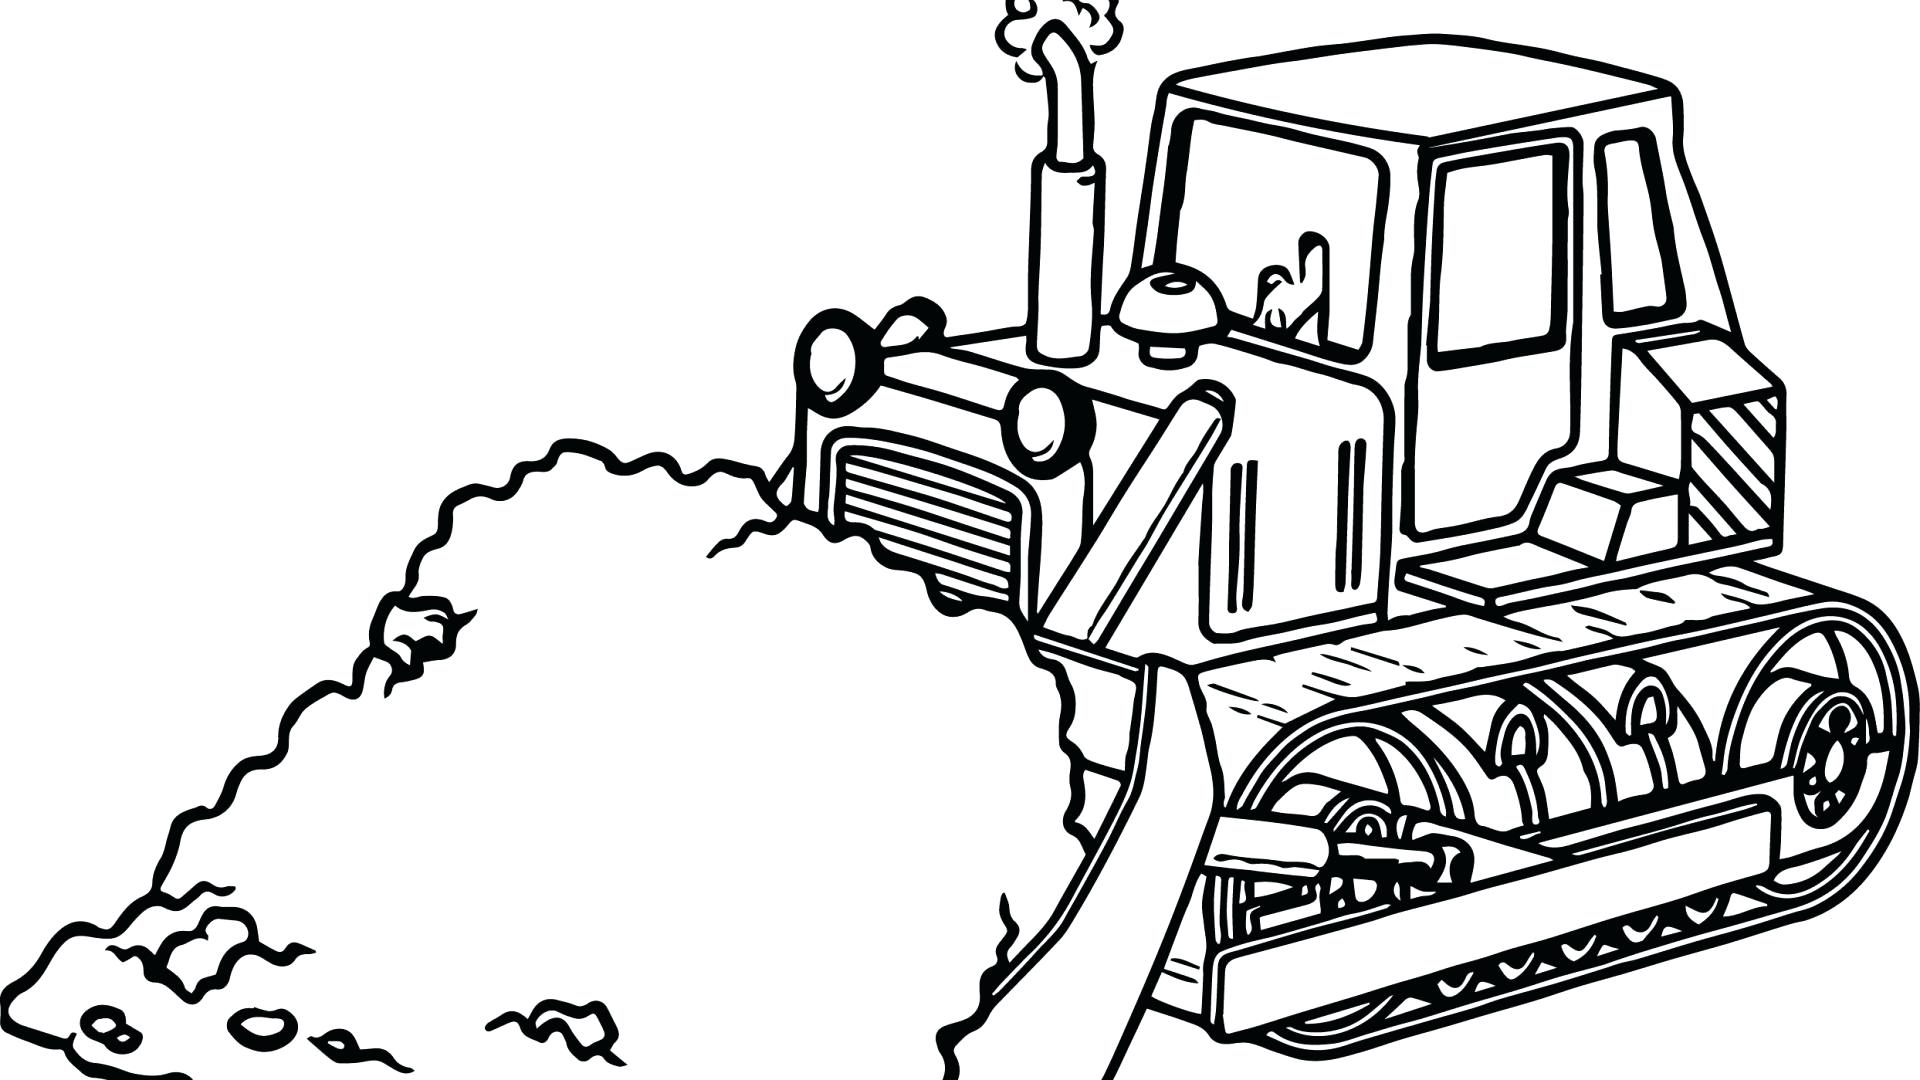 1920x1080 Coloring Pittsburgh Steelers Coloring Pages